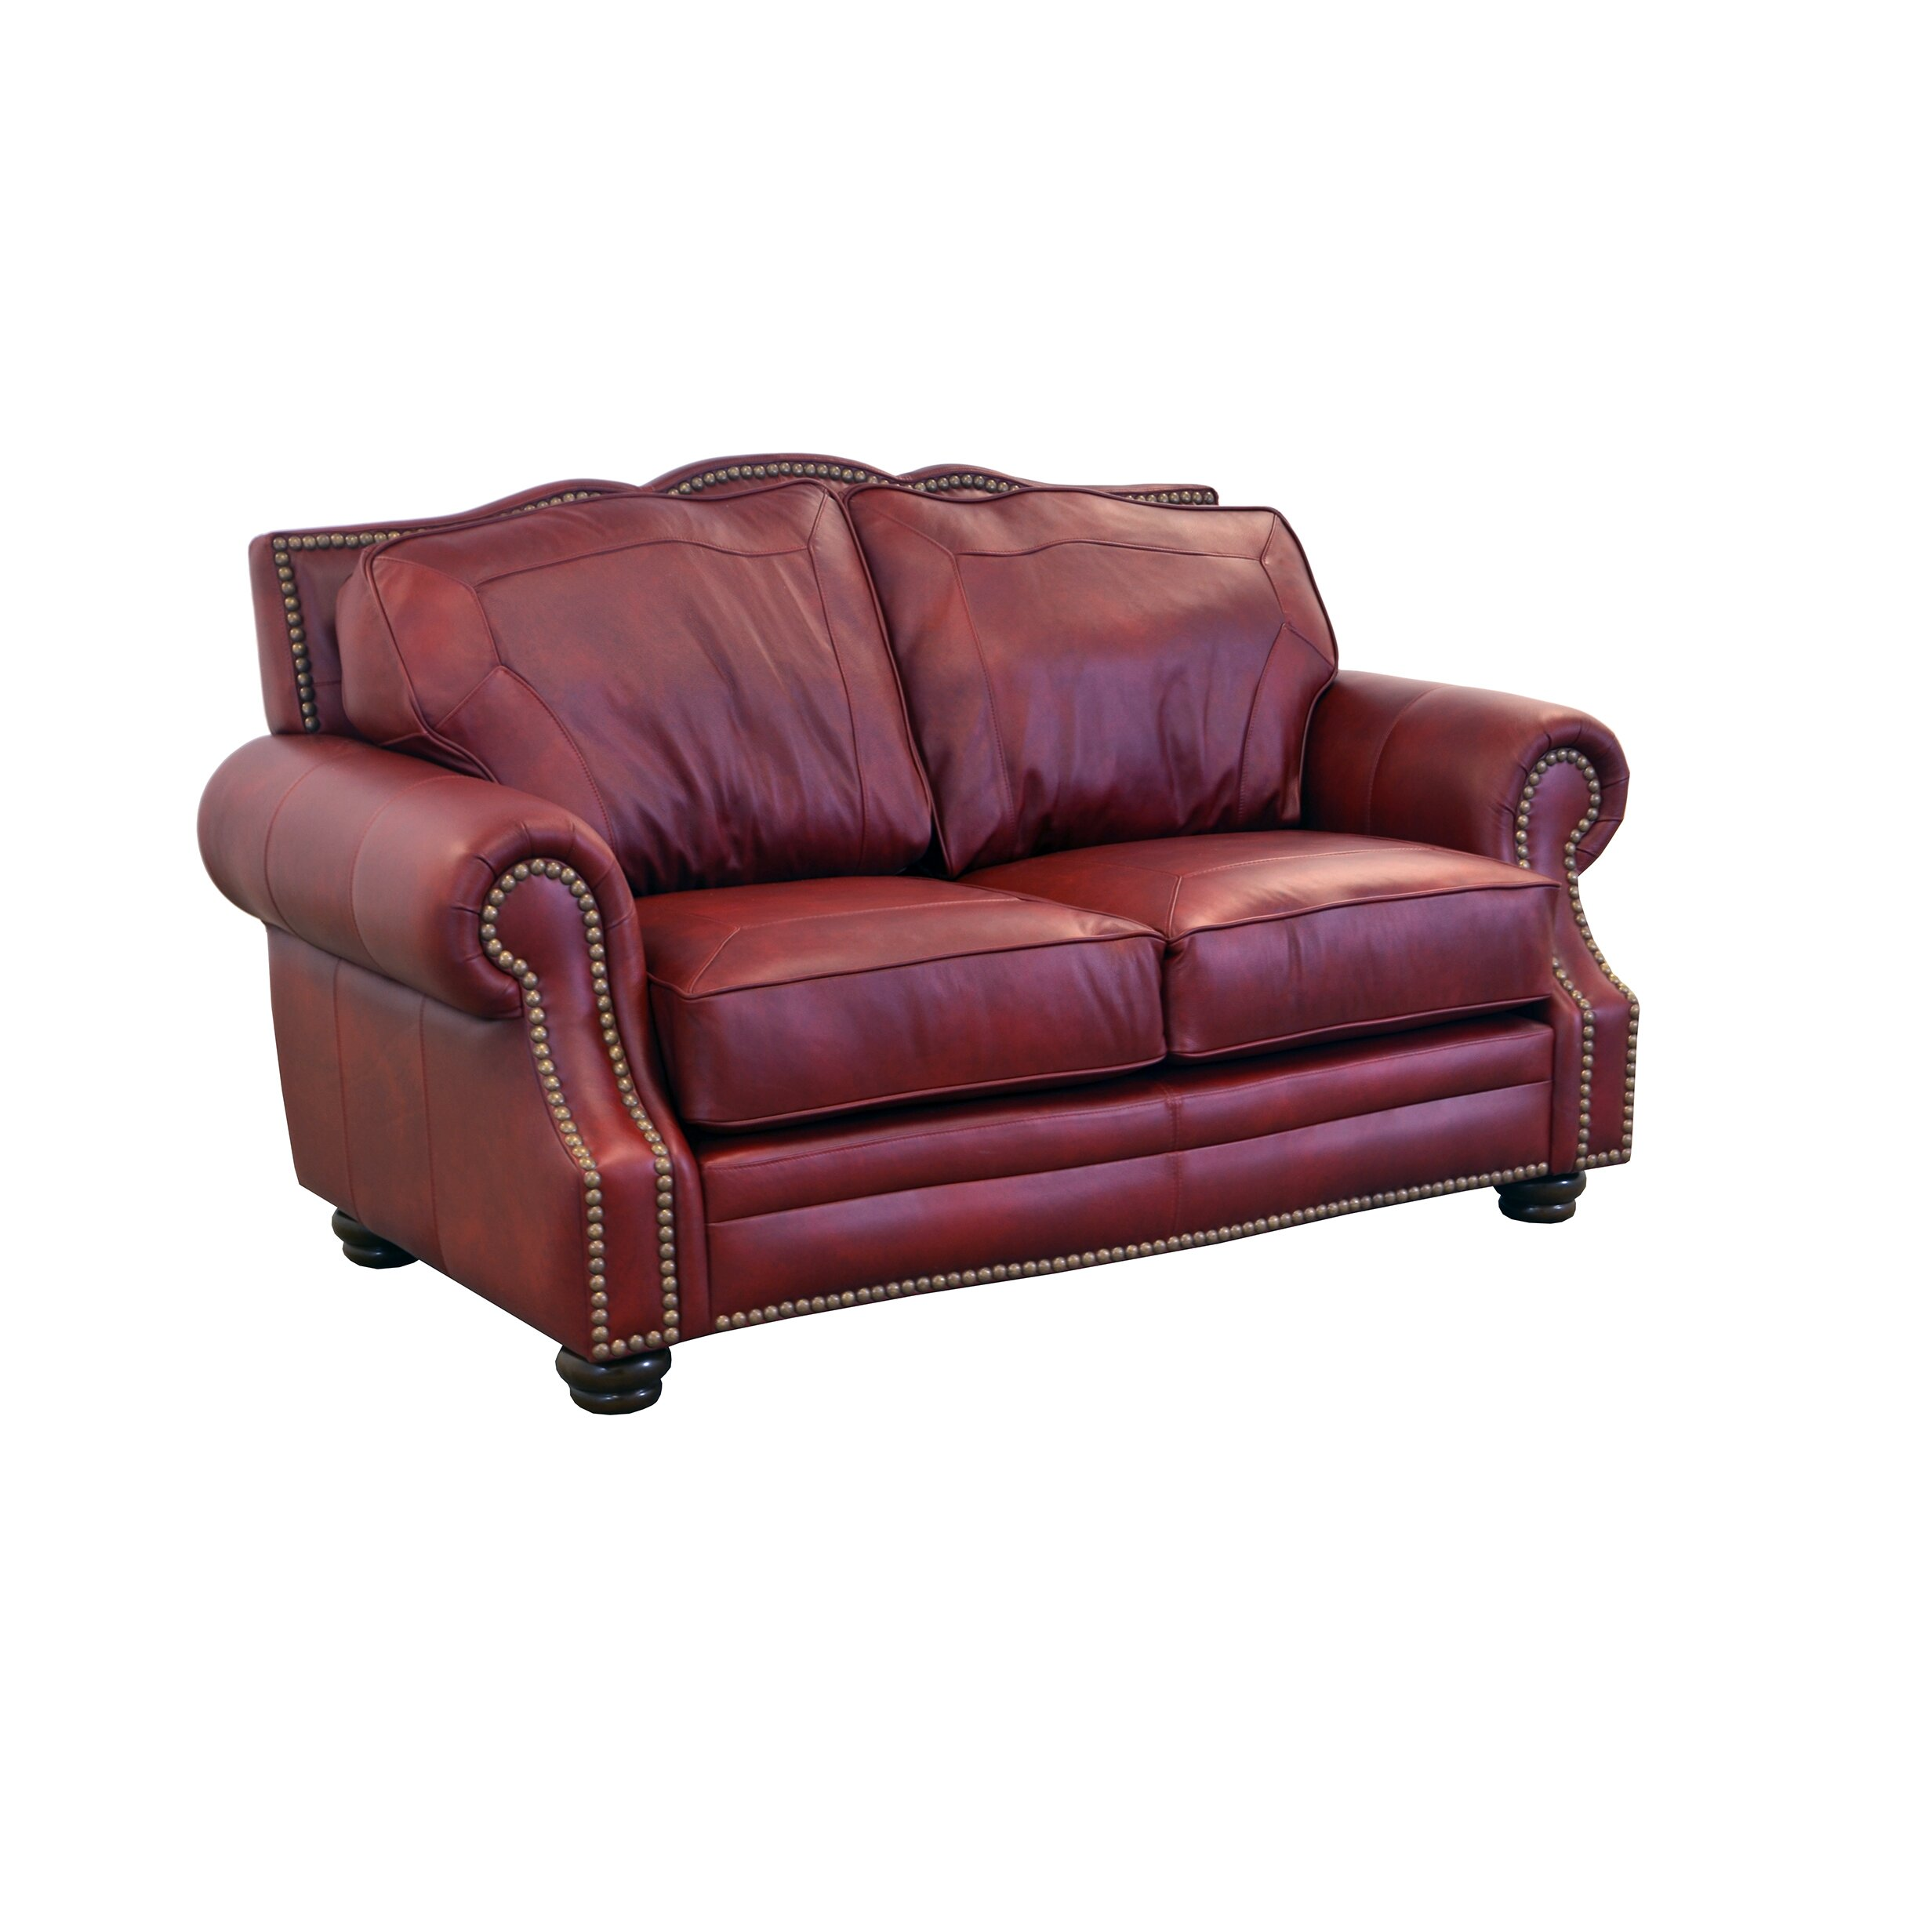 Genuine Leather Sectional Sofa Canada: Westland And Birch Winchester Genuine Top Grain Leather